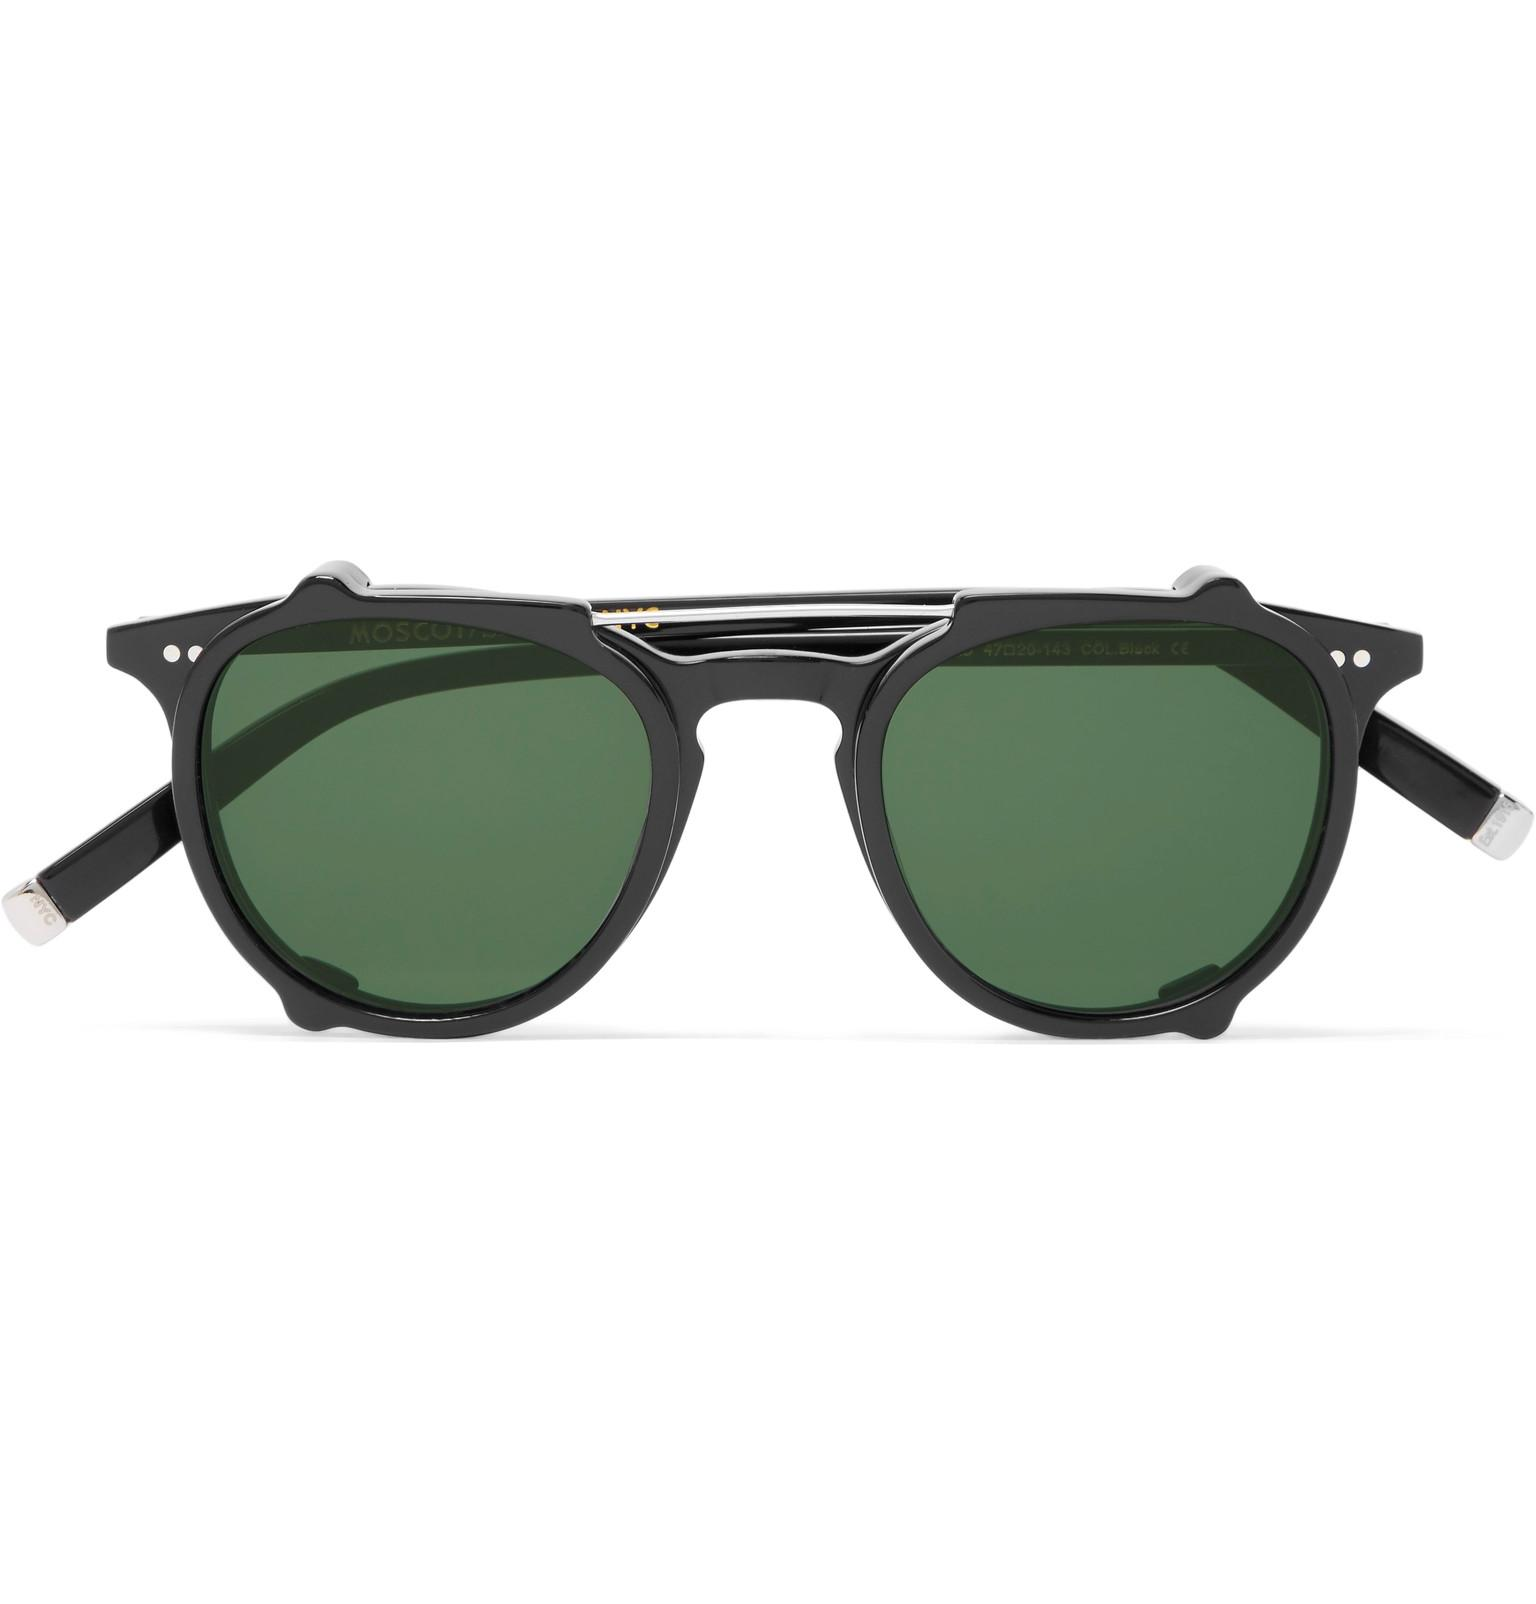 7fb423ebc8f Lyst - Moscot Jared Round-frame Acetate Optical Glasses With Clip-on ...